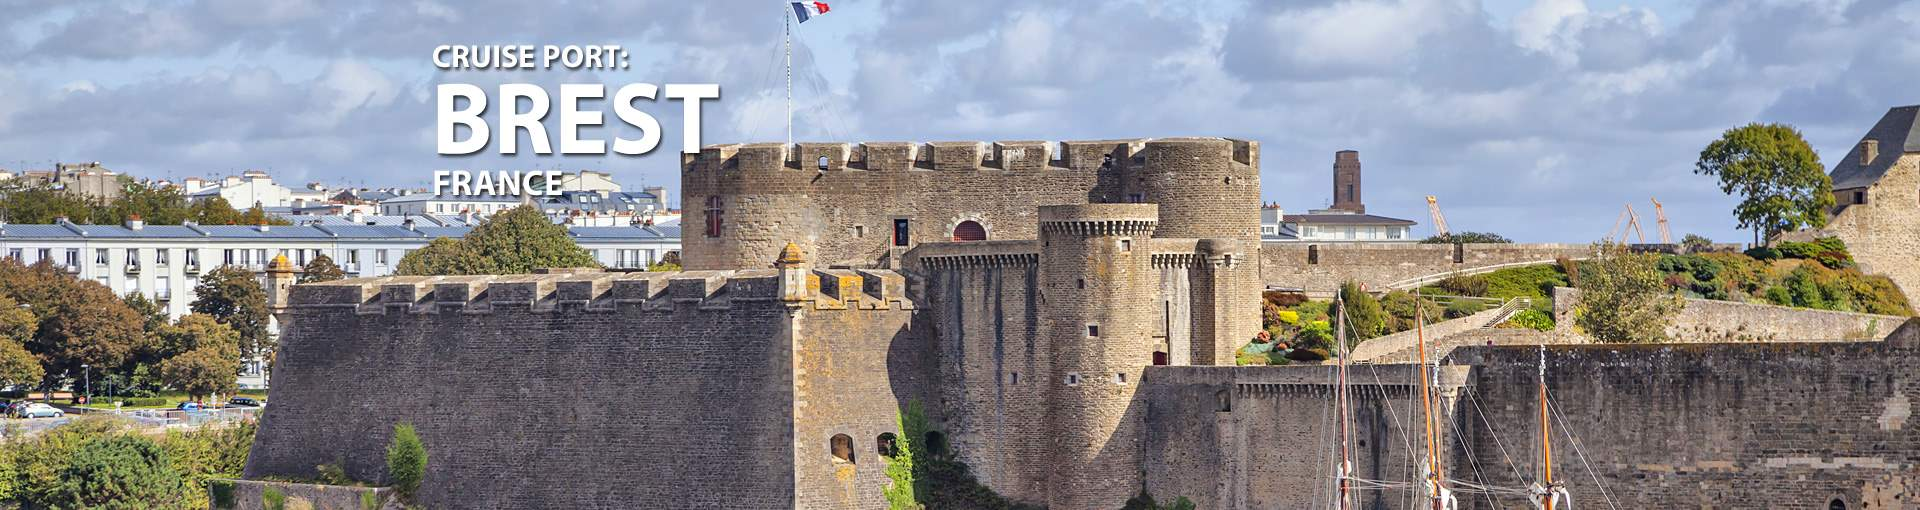 Cruises to Brest, France